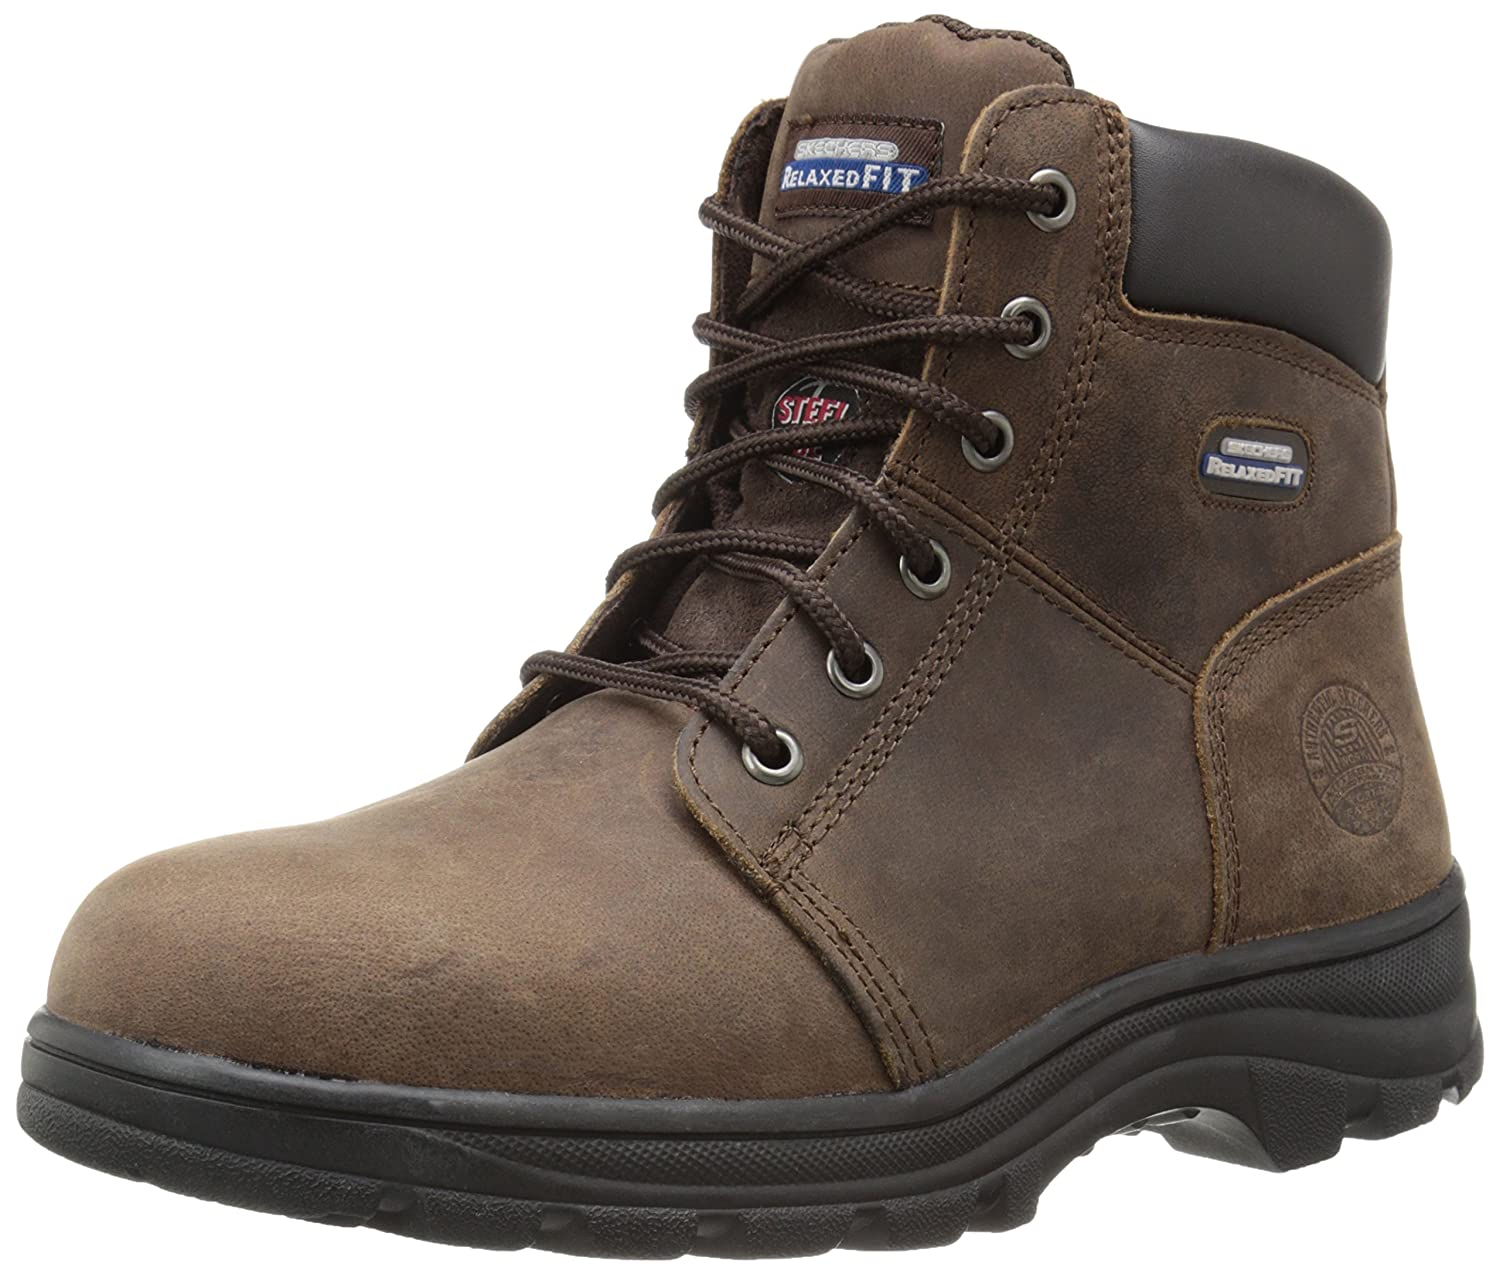 Skechers fAtilde;frac14;r Arbeit 76.561 Workshire Peril Stiefel  39.5 EU|Dark Brown